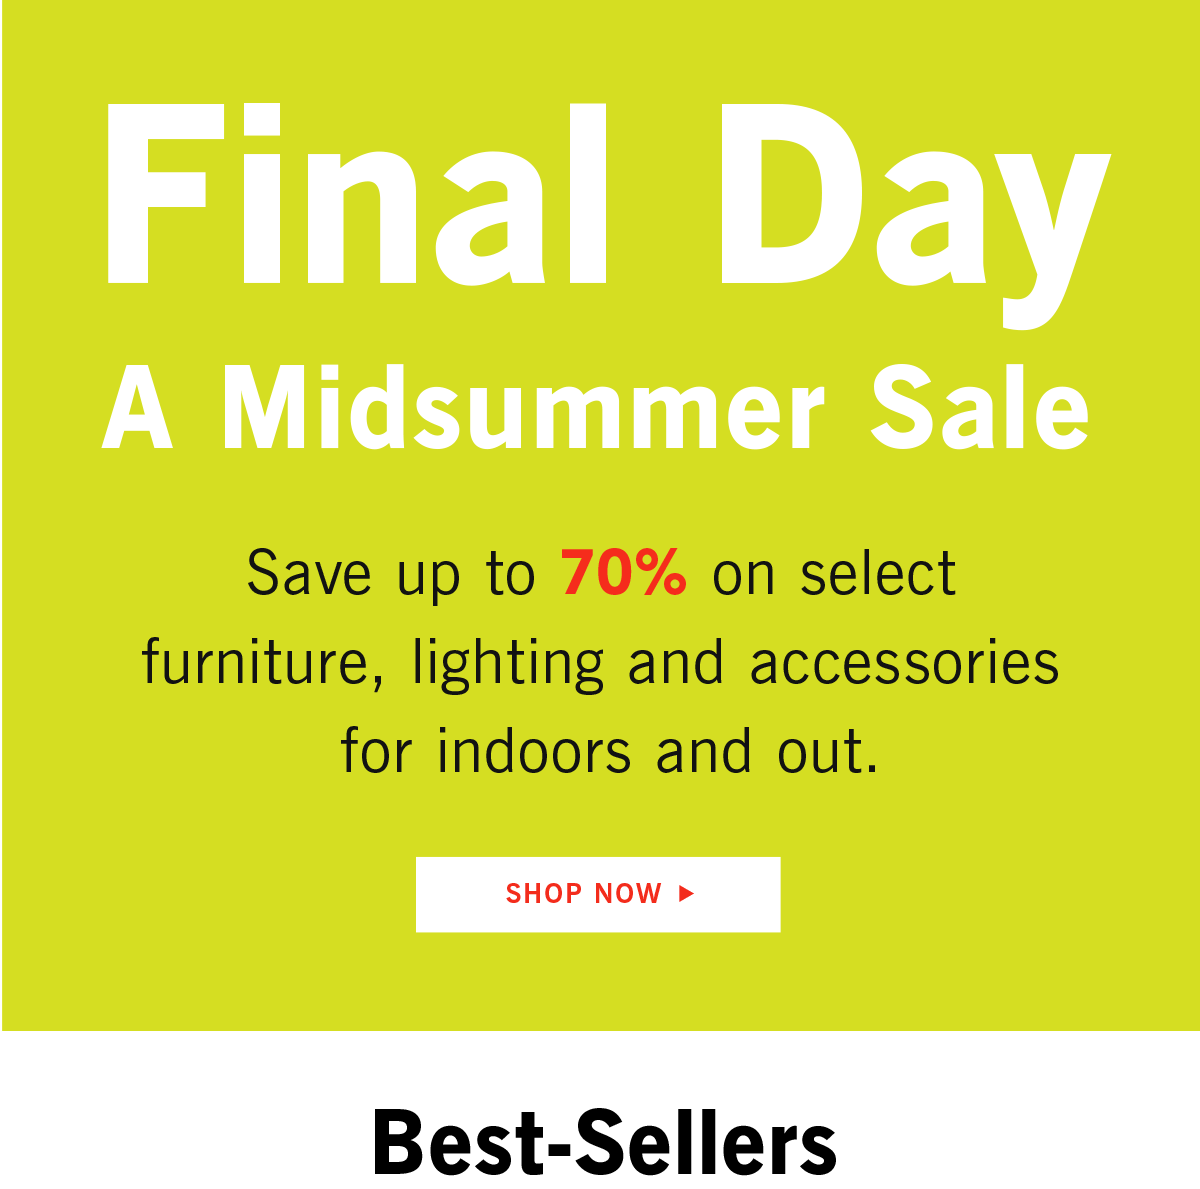 Final Day A Midsummer Sale Shop Now